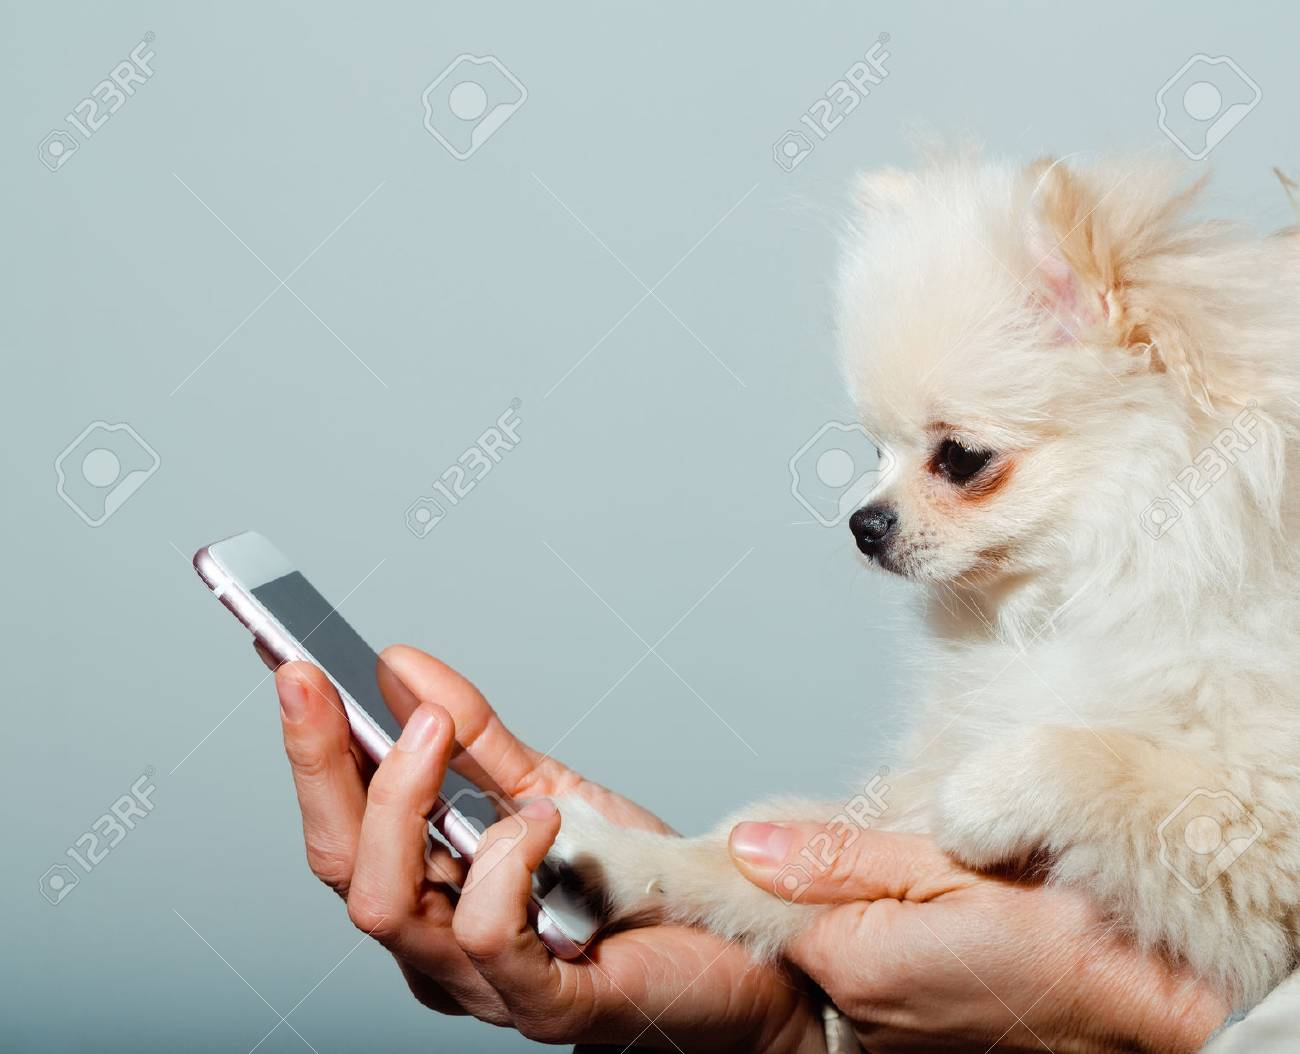 Cute pomeranian dog or puppy pet, with fawn coat using smartphone, mobile phone, in cute, faux fur cover in female hands on grey background - 74189041